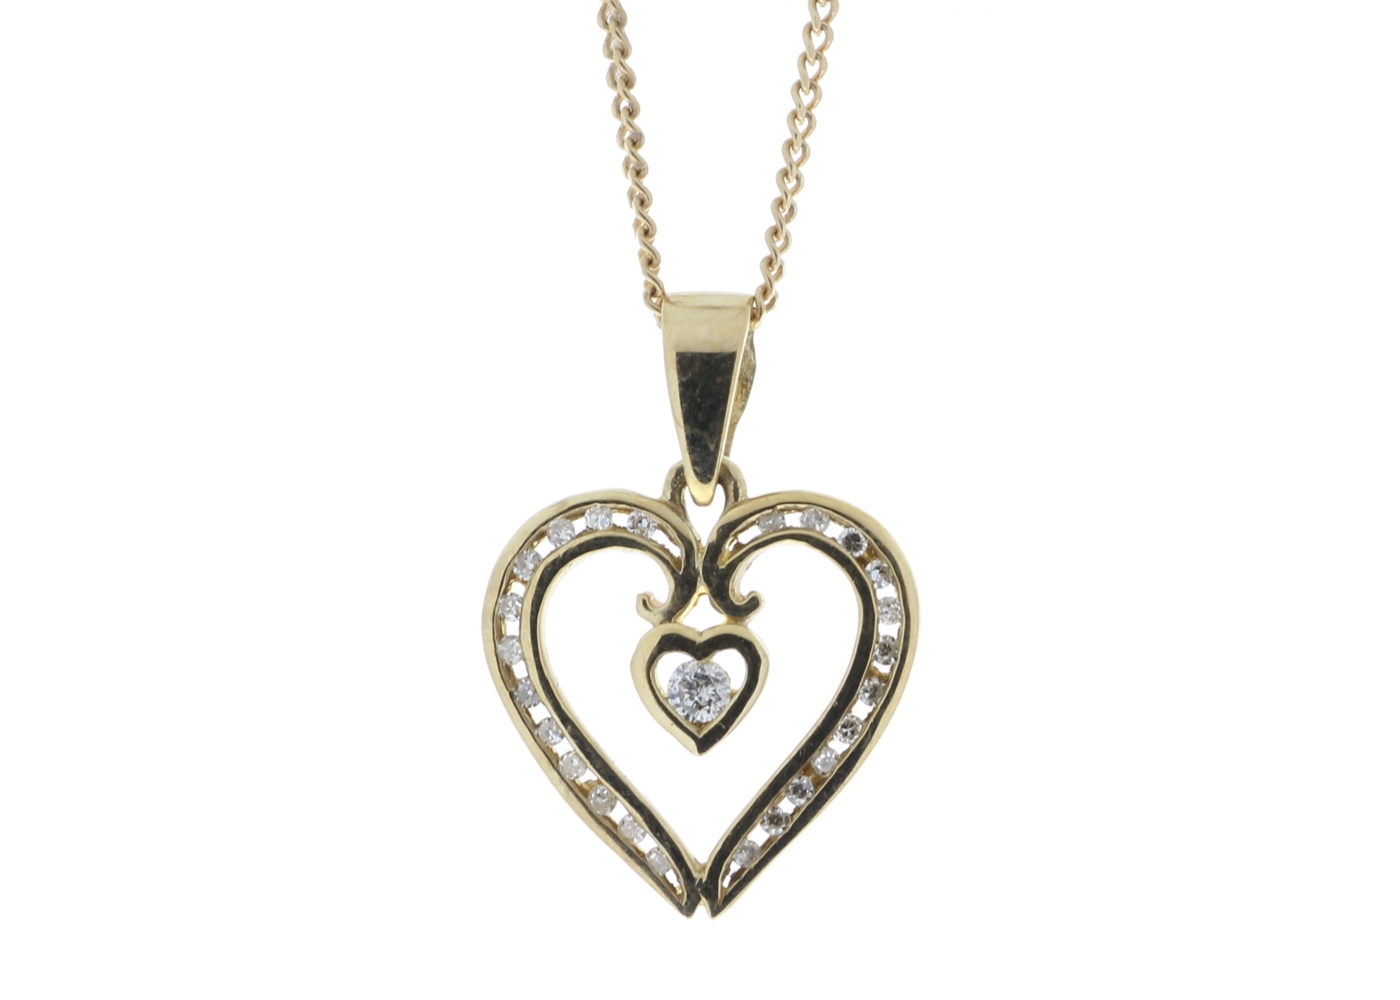 Lot 51 - 9ct Yellow Gold Heart Shaped Pendant Set With Diamonds 0.16 Carats